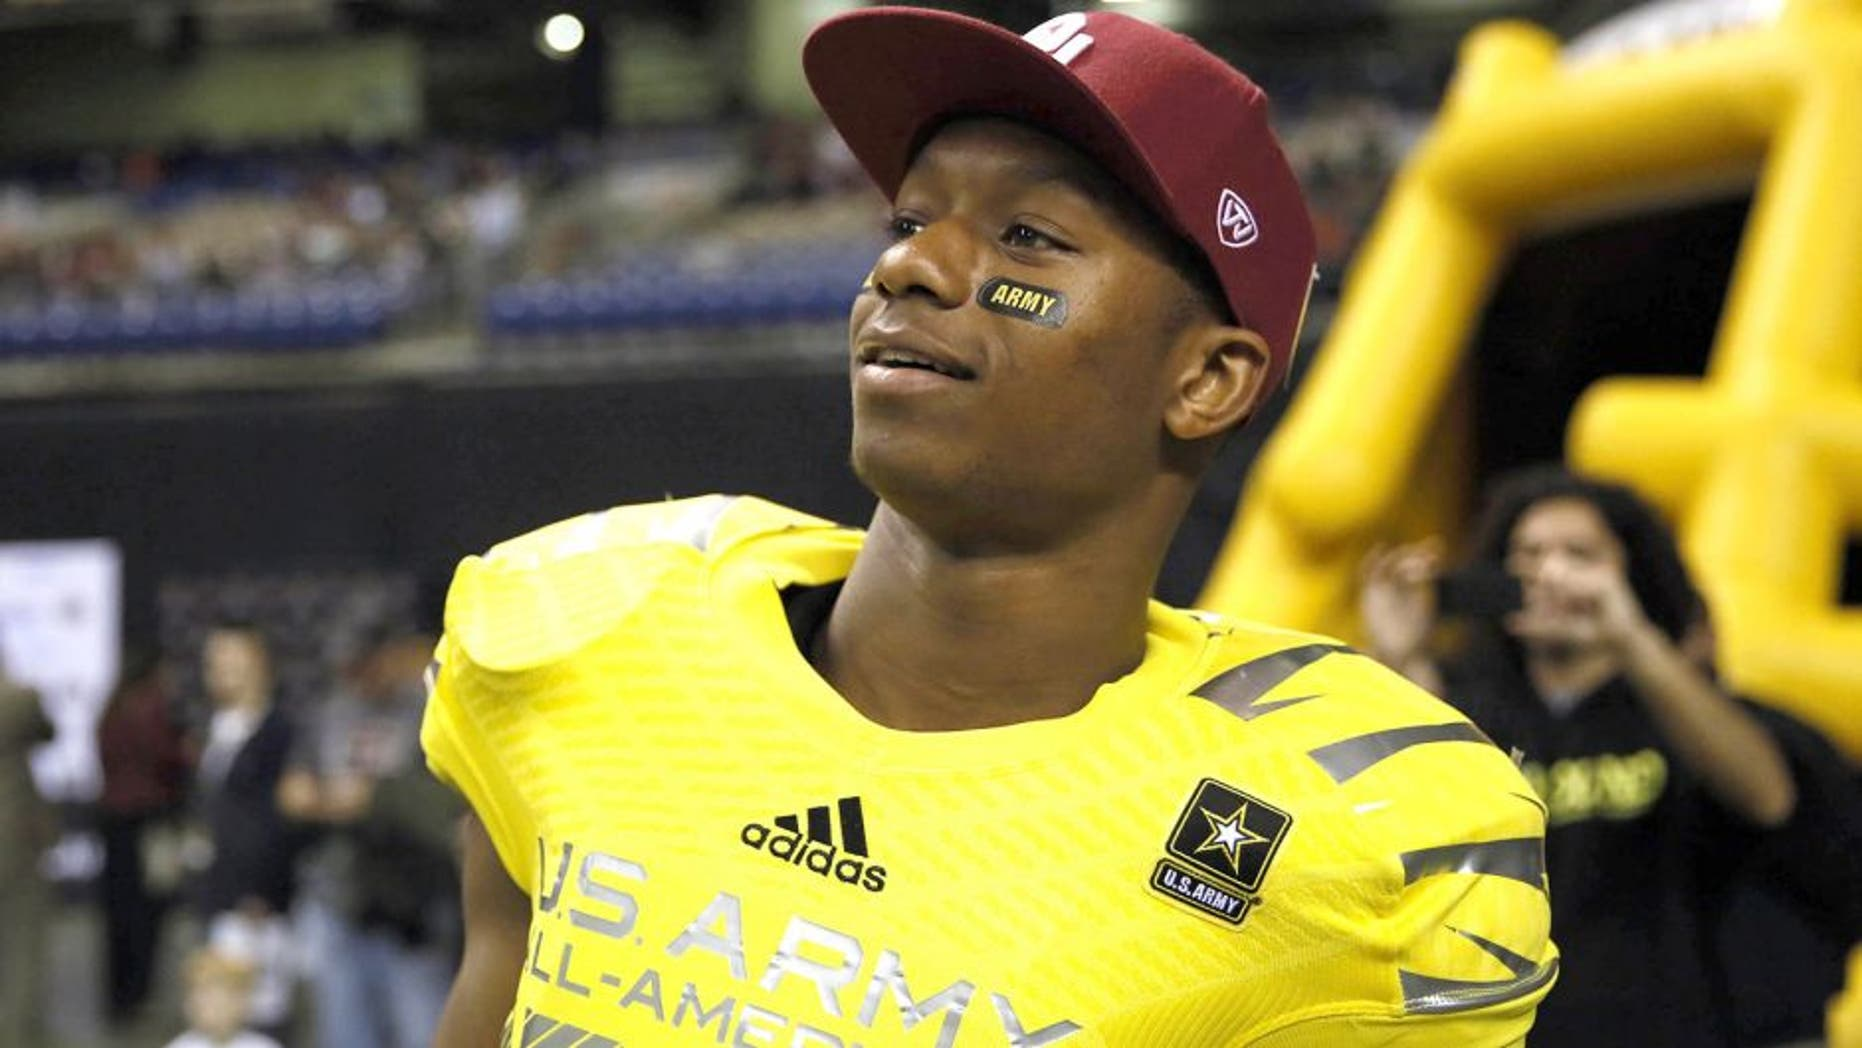 Jan 4, 2014; San Antonio, TX, USA; West running back Joe Mixon (28) watches from the sidelines during U.S. Army All-American Bowl high school football game at the Alamodome. The West won 28-6. Mandatory Credit: Soobum Im-USA TODAY Sports